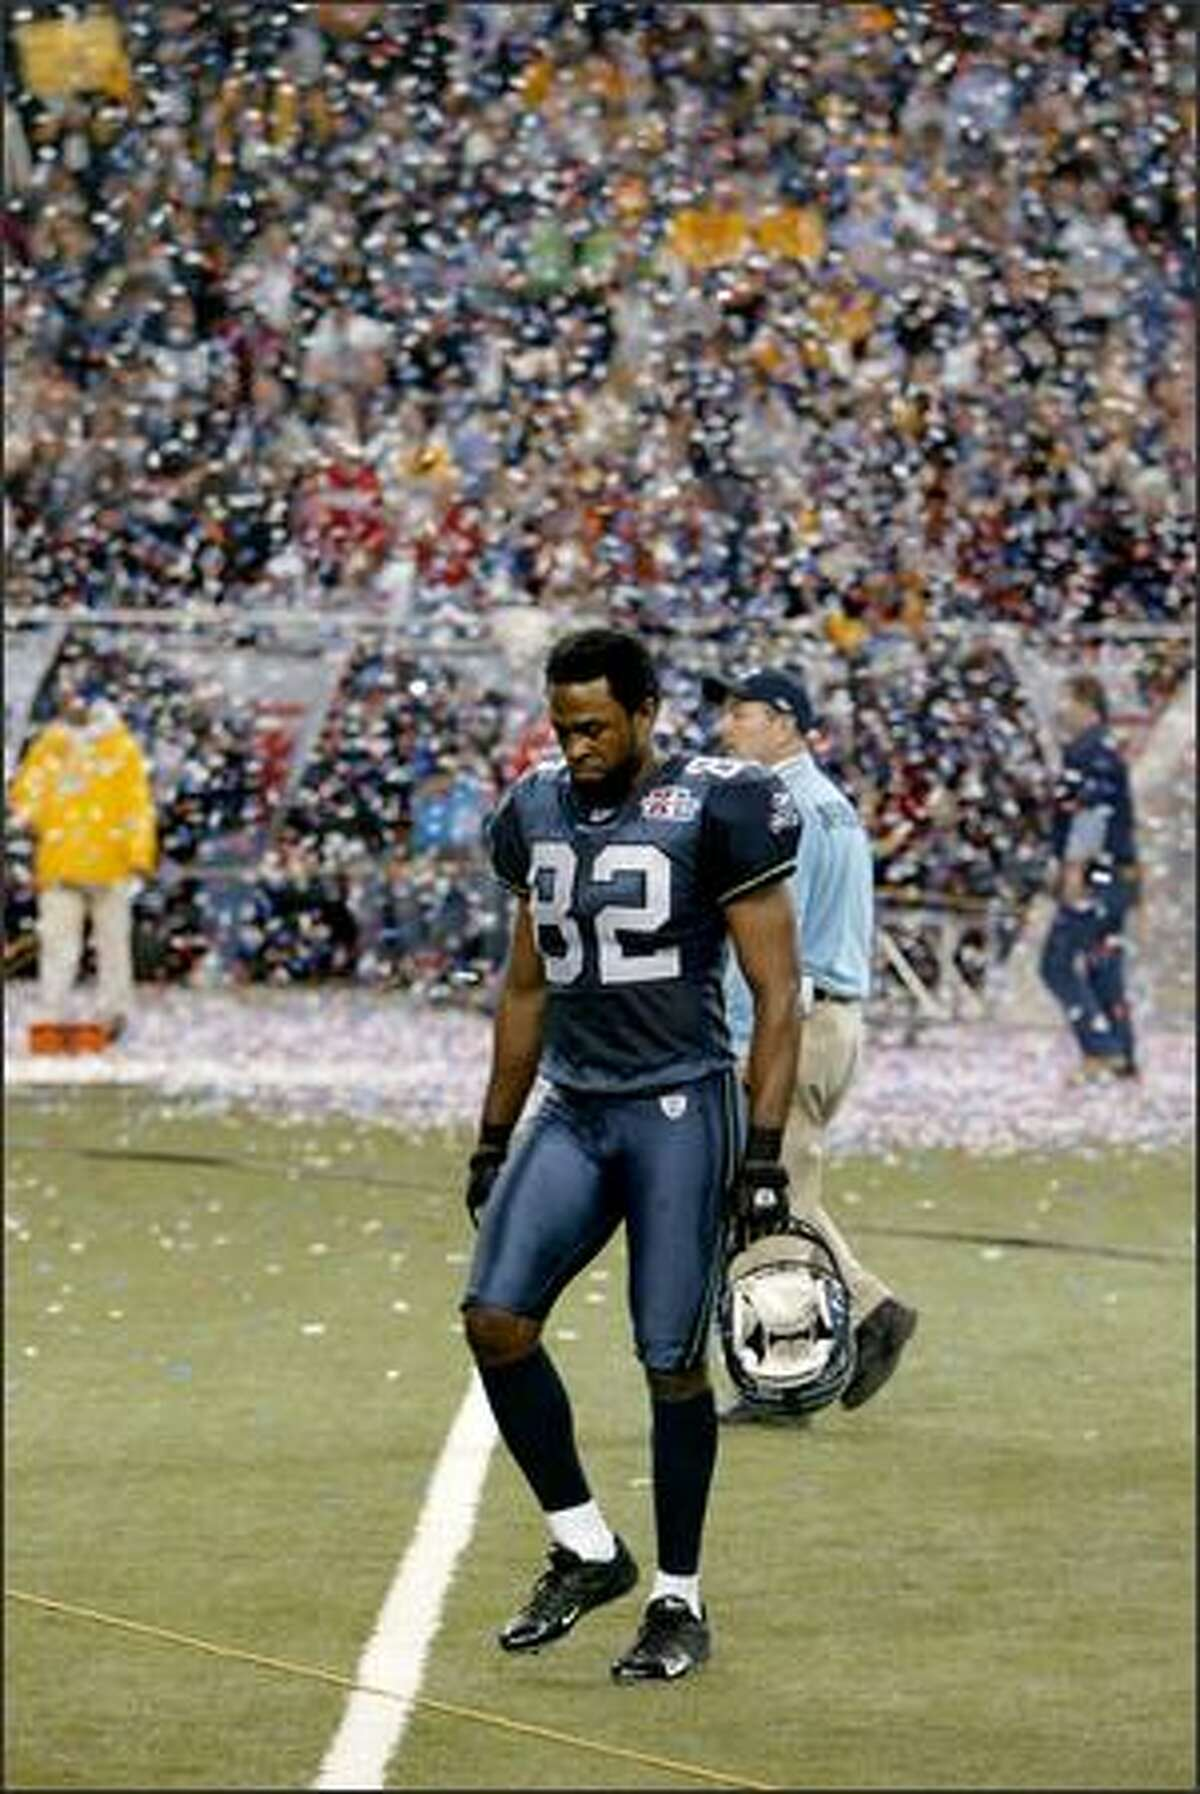 Seattle receiver Darrell Jackson walks off the field after the Seahawks lost Super Bowl XX to the Pittsburgh Steelers 21-10.